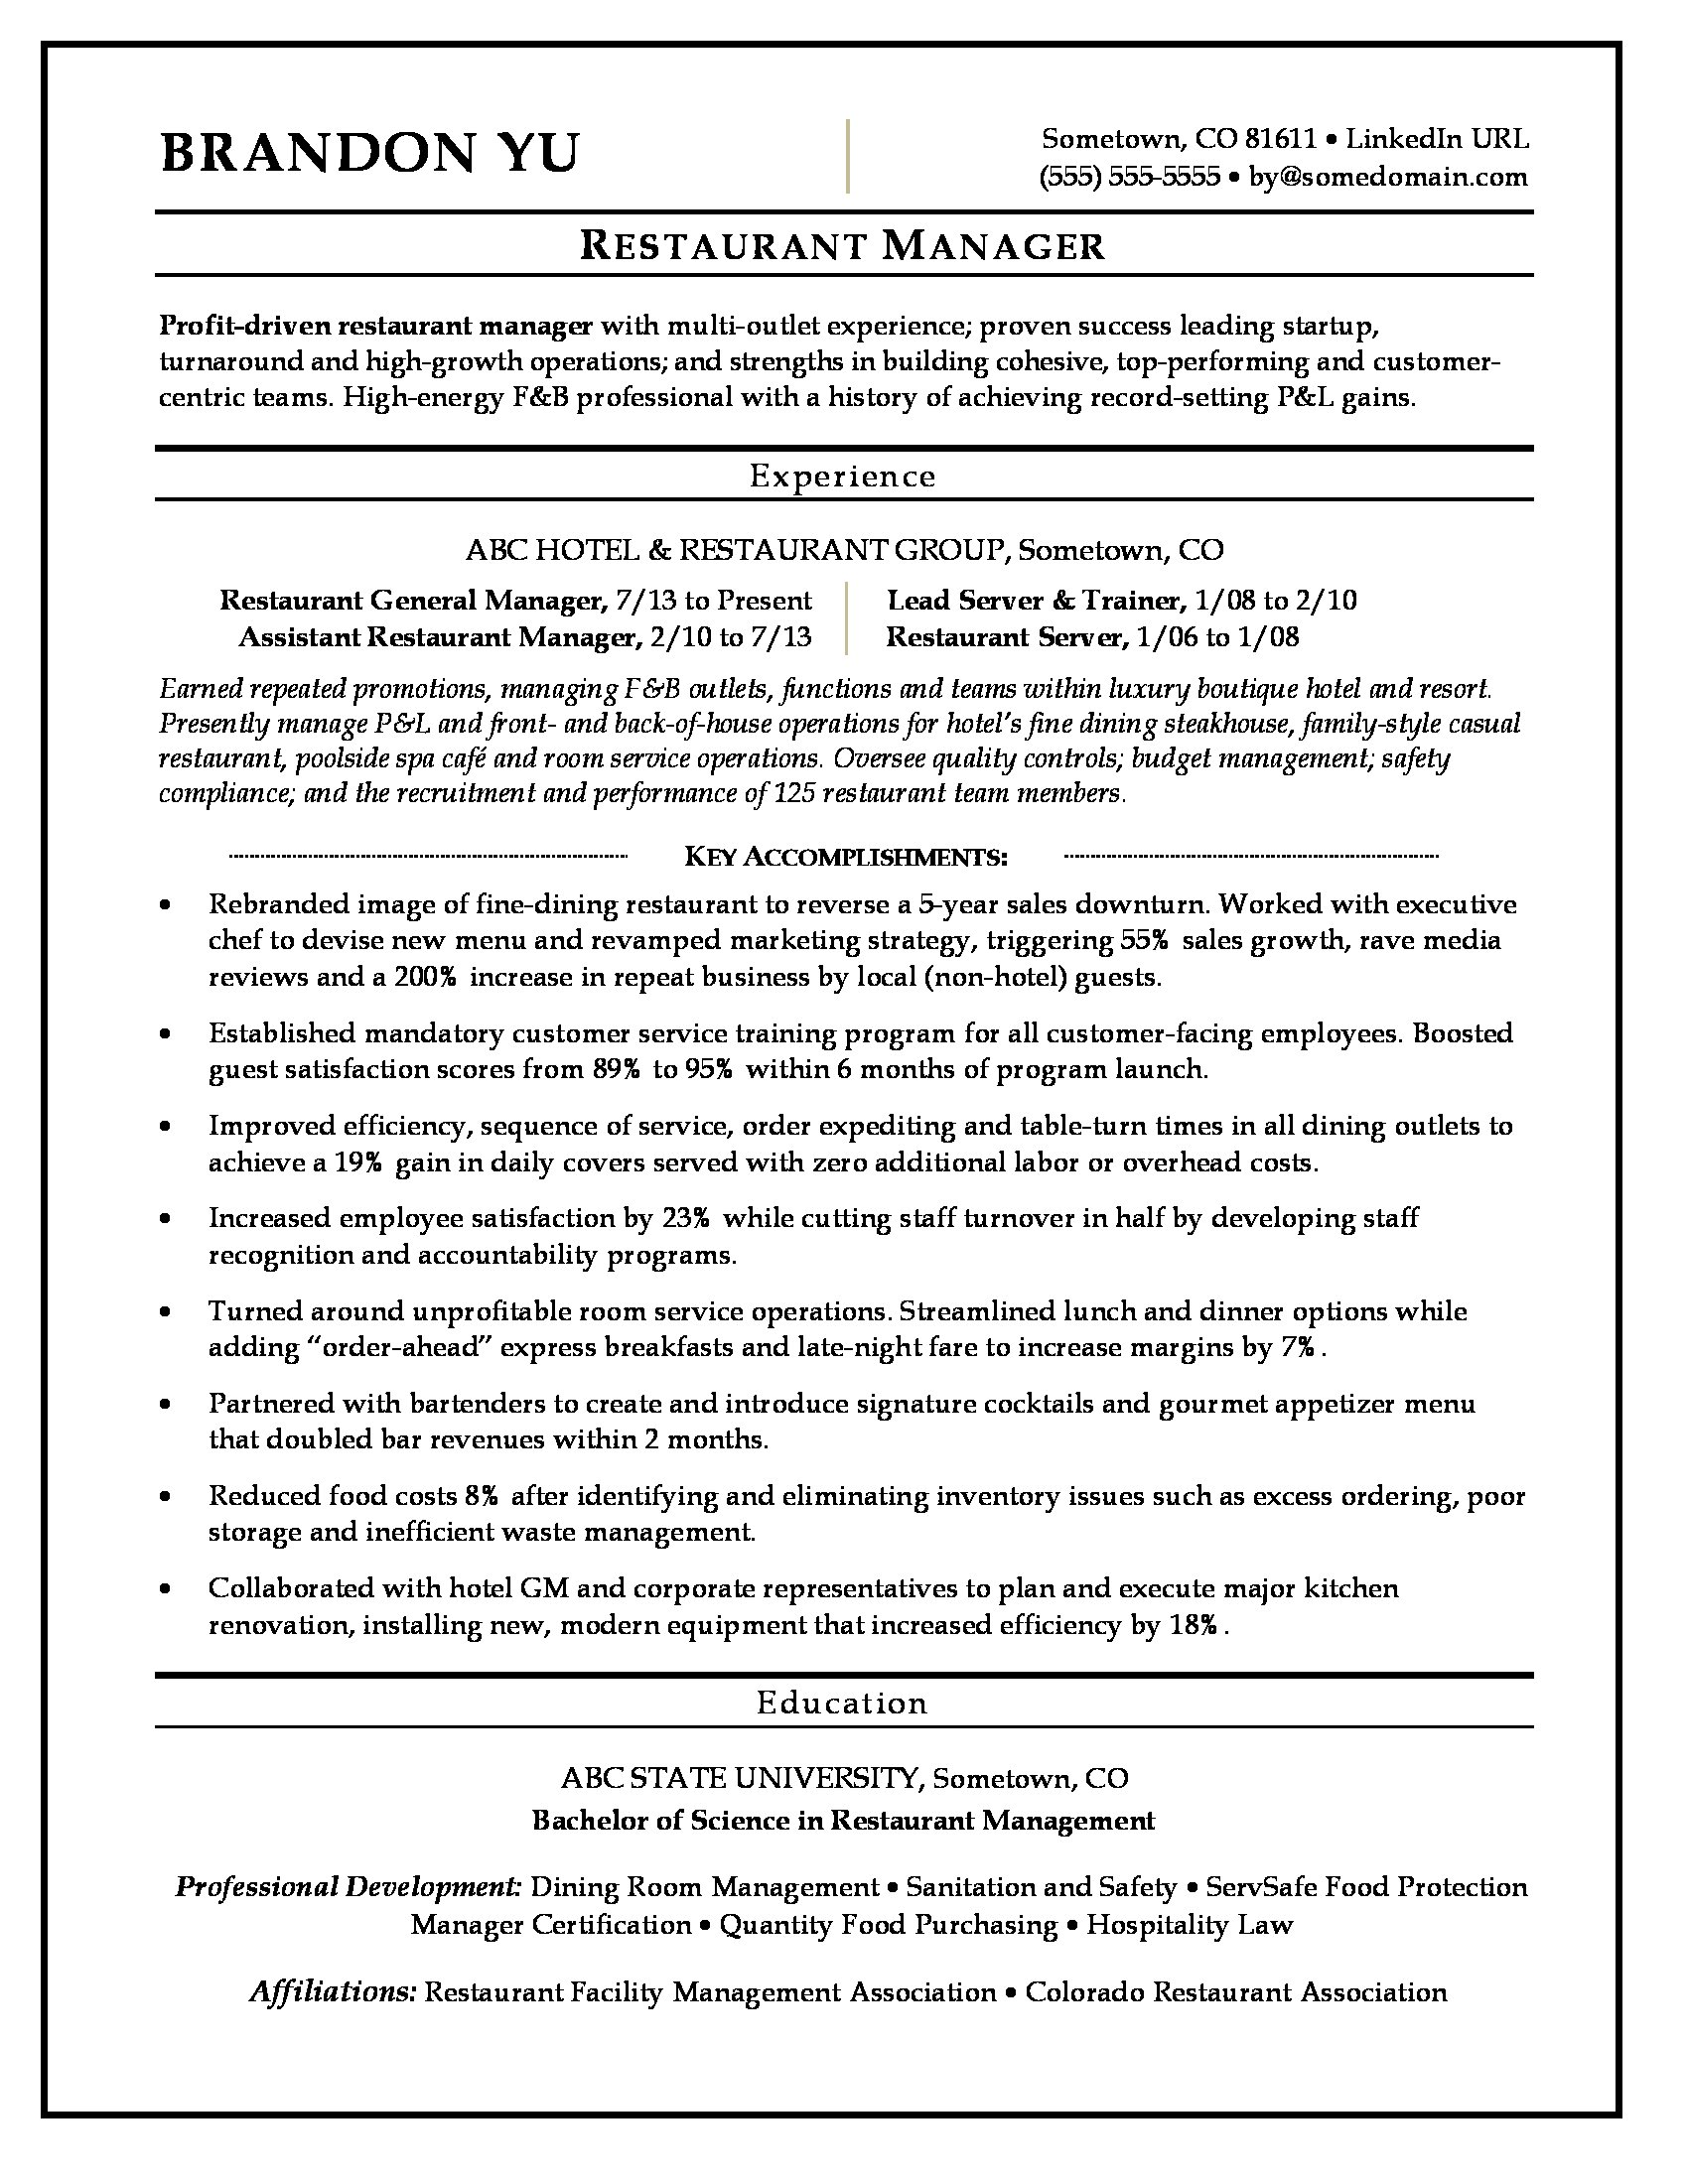 restaurants manager resume sample - April.onthemarch.co